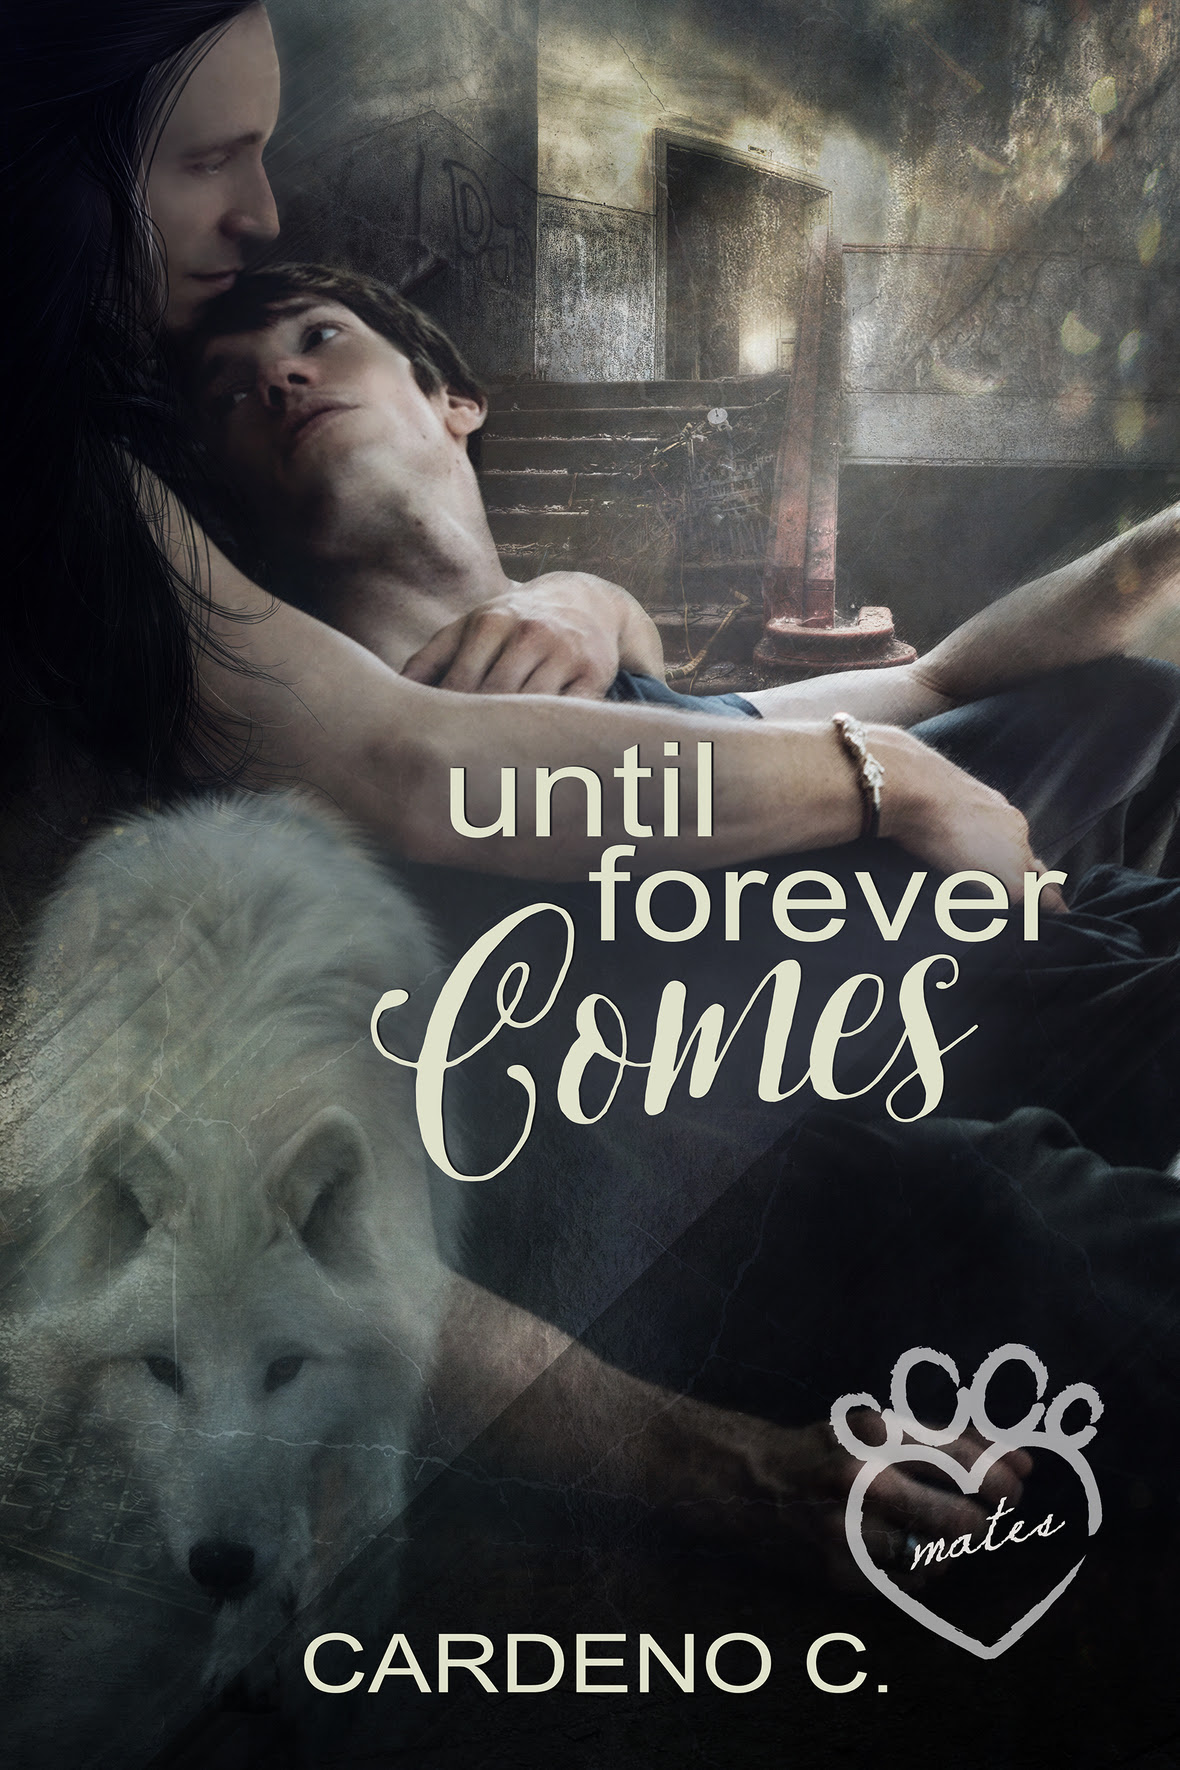 untillforevercomes-cardenoC-customcover-jayaheer2015-1800x2700